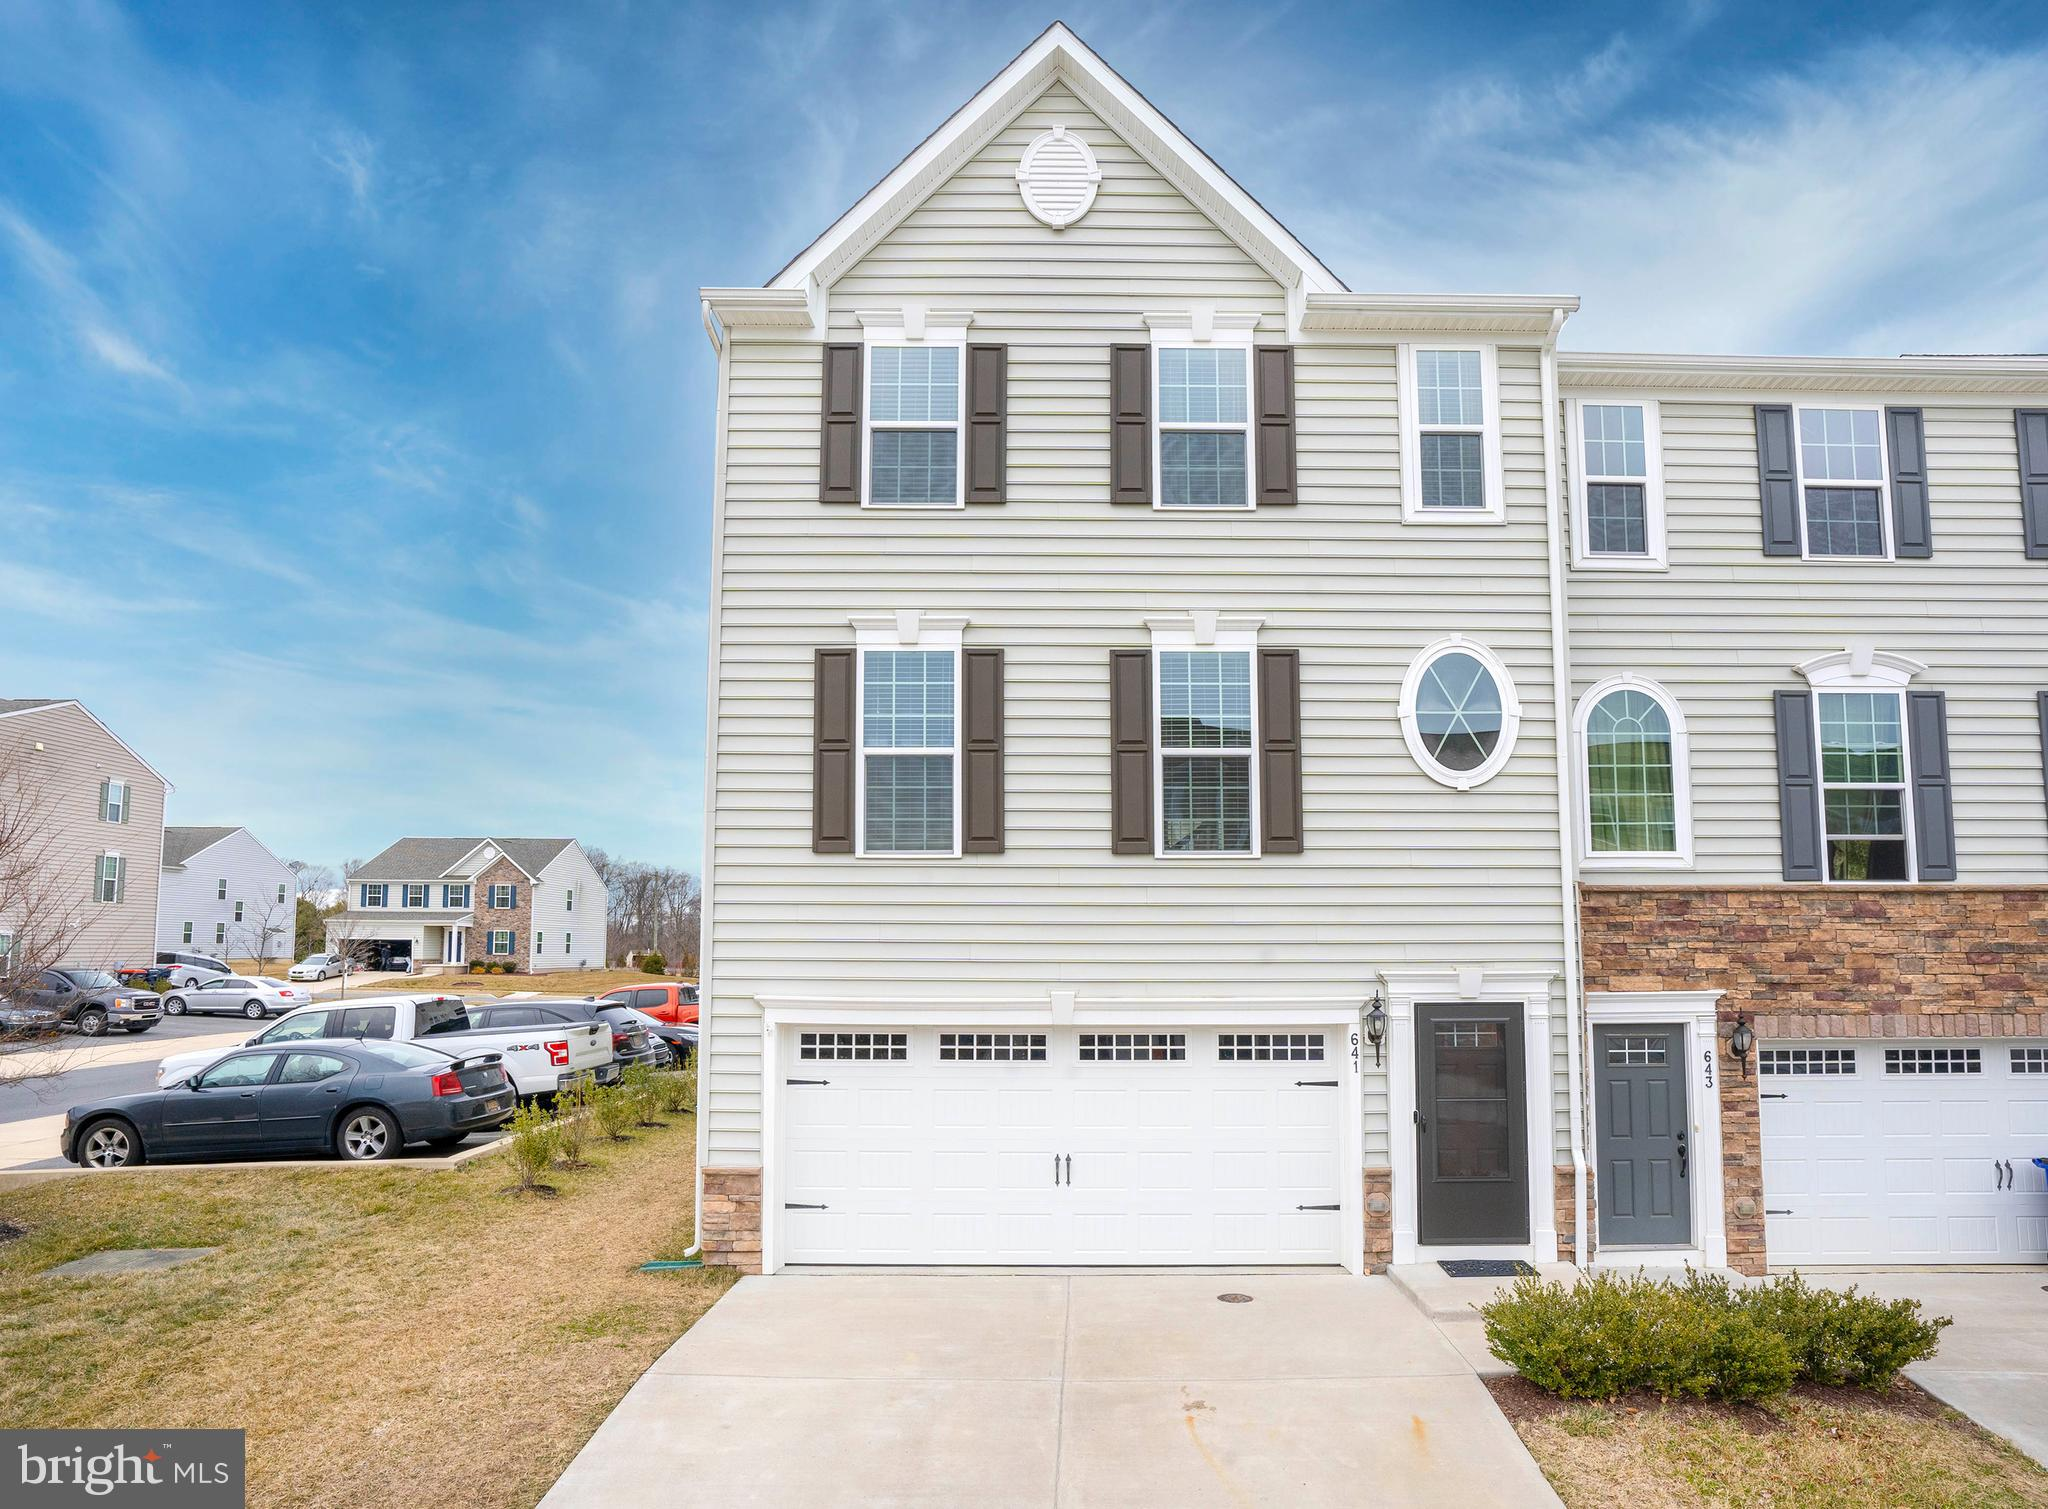 HIGH HOOK FARMS - LIKE NEW 3 Bedroom, 2.5 Bathroom End-Unit Townhouse in Middletown.  This meticulous property is located on a PREMIUM CORNER LOT & is within the highly-ranked APPOQUINIMINK SCHOOL DISTRICT.  Just built in August of 2017, this home is like new but without the wait!  Featuring 3 FLOORS OF LIVING SPACE & a 2-CAR GARAGE, this one should not be missed on your tour.  Head up the private driveway and enter the home into the 1st floor foyer.  On the first level you will find interior access to the garage and a spacious family room with direct walk-out access to the back yard.  Head up to the main level of the home where you will find beautiful hardwood floors that run throughout.  The kitchen features: GRANITE countertops, crown molding on cabinetry, an island, a pantry, recessed lights, a smart fridge, and STAINLESS-STEEL APPLIANCES (included!).  Completely open to the kitchen is the dining room which includes a built-in dry bar and a chandelier.  A door from the kitchen leads to the elevated 2nd story DECK, perfect for grilling and outdoor entertaining!  Back inside and also on the main level is a powder room.  Head to the upper level where you will find 3 bedrooms, 2 full baths & a 3rd FLOOR LAUNDRY CLOSET.  The Master Suite features a tray ceiling with crown molding, a WALK-IN CLOSET, and a 5-PIECE MASTER BATH.  The Master Bathroom boasts double sinks, a soaking tub, a shower, tile floors, and tile bath/shower surrounds with mosaic accents.  The two remaining bedrooms are of good size and a 2nd full bathroom can be found down the hall.  Other notable features include; Tankless Water Heater, 4 ft. Builder Bump Out in the rear, all appliances included, smart home Nest doorbell & Nest thermostat included.  Don't wait, call to schedule your tour today before it's too late!